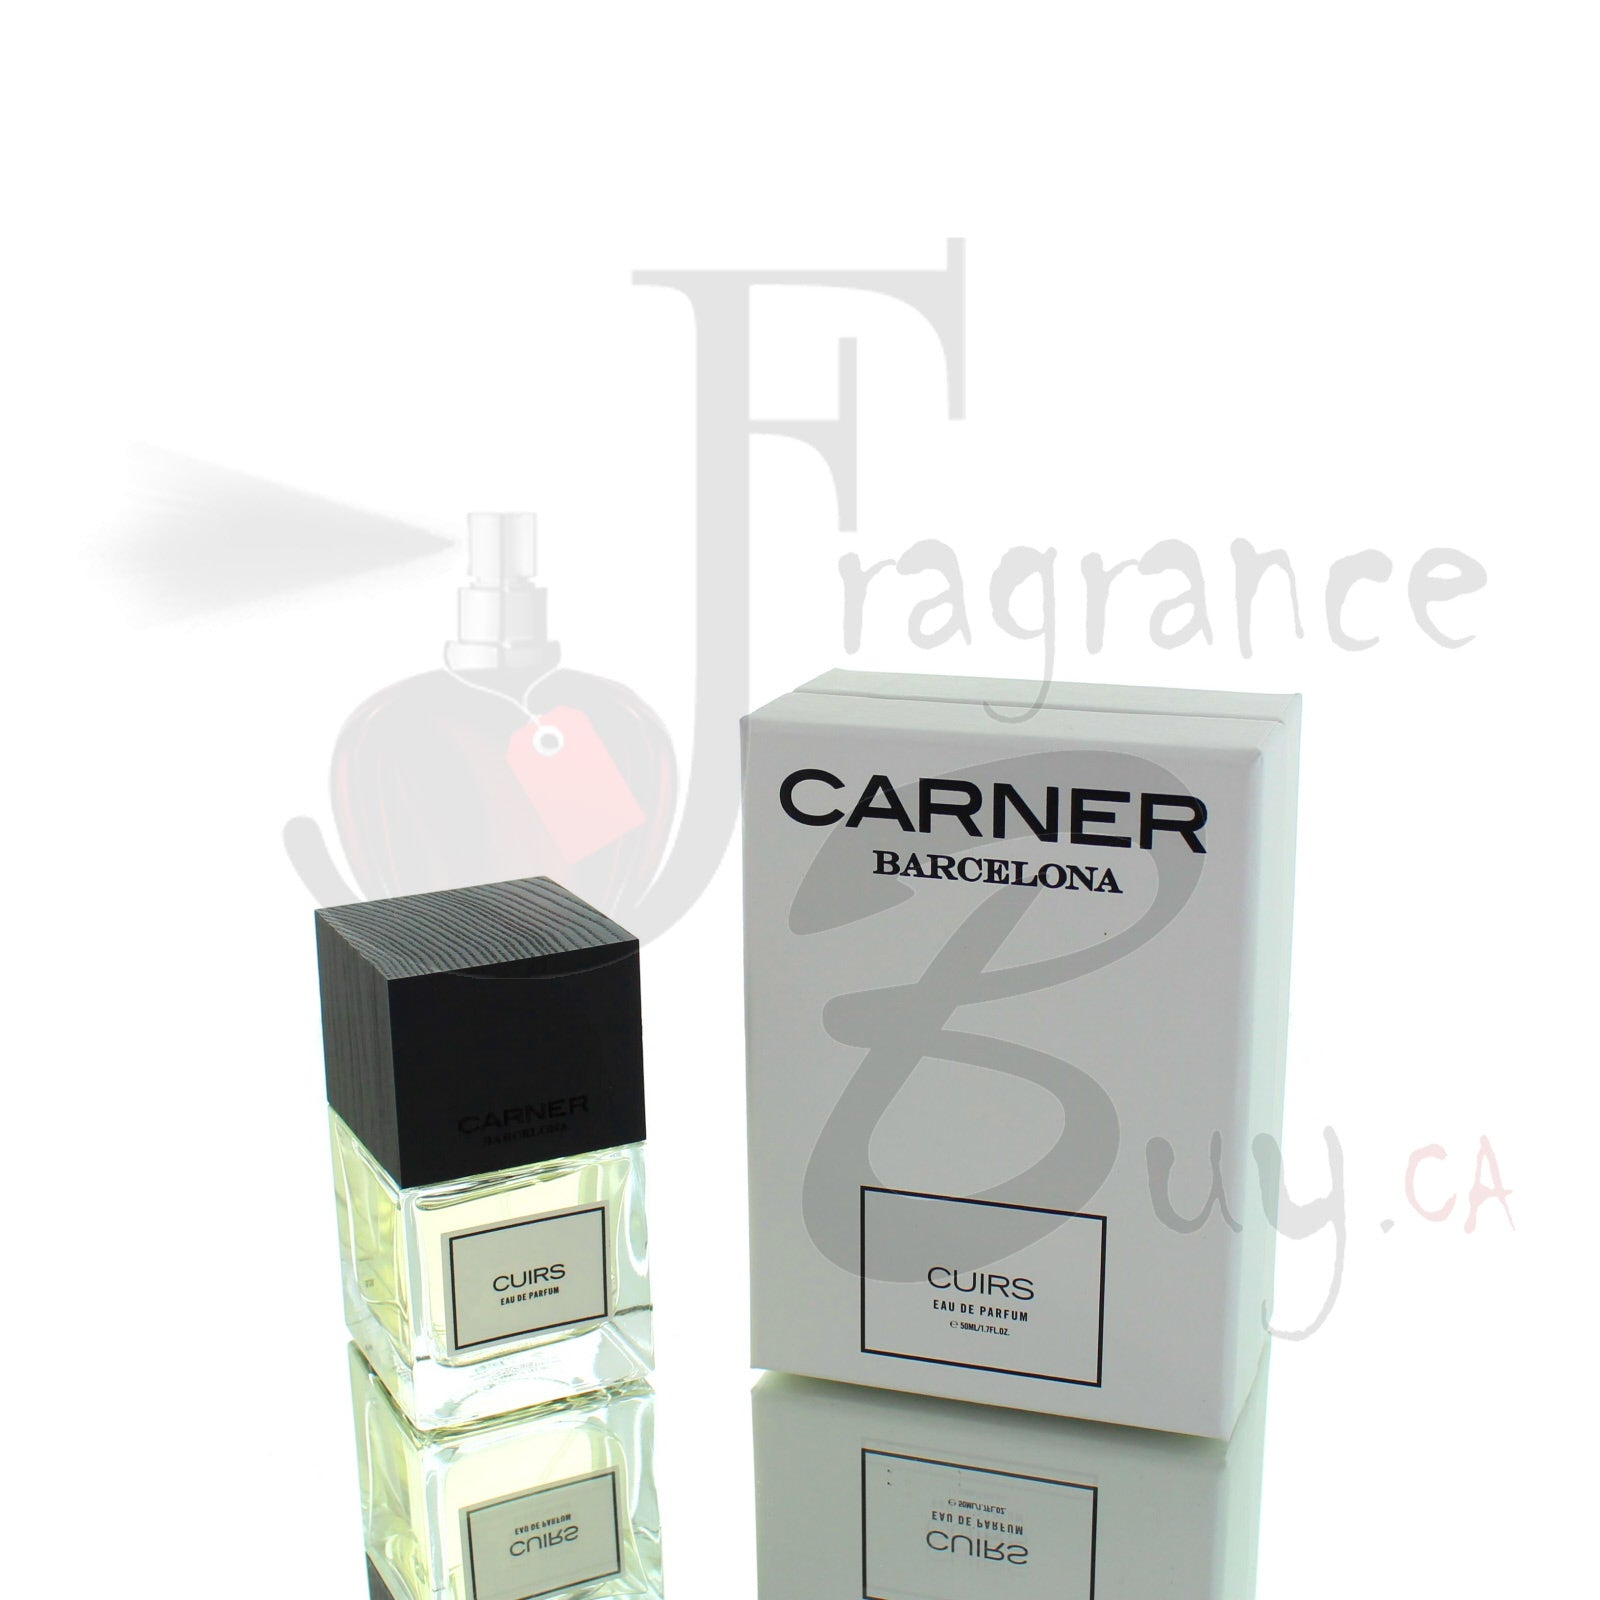 Carner Barcelona Cuirs For Man/Woman